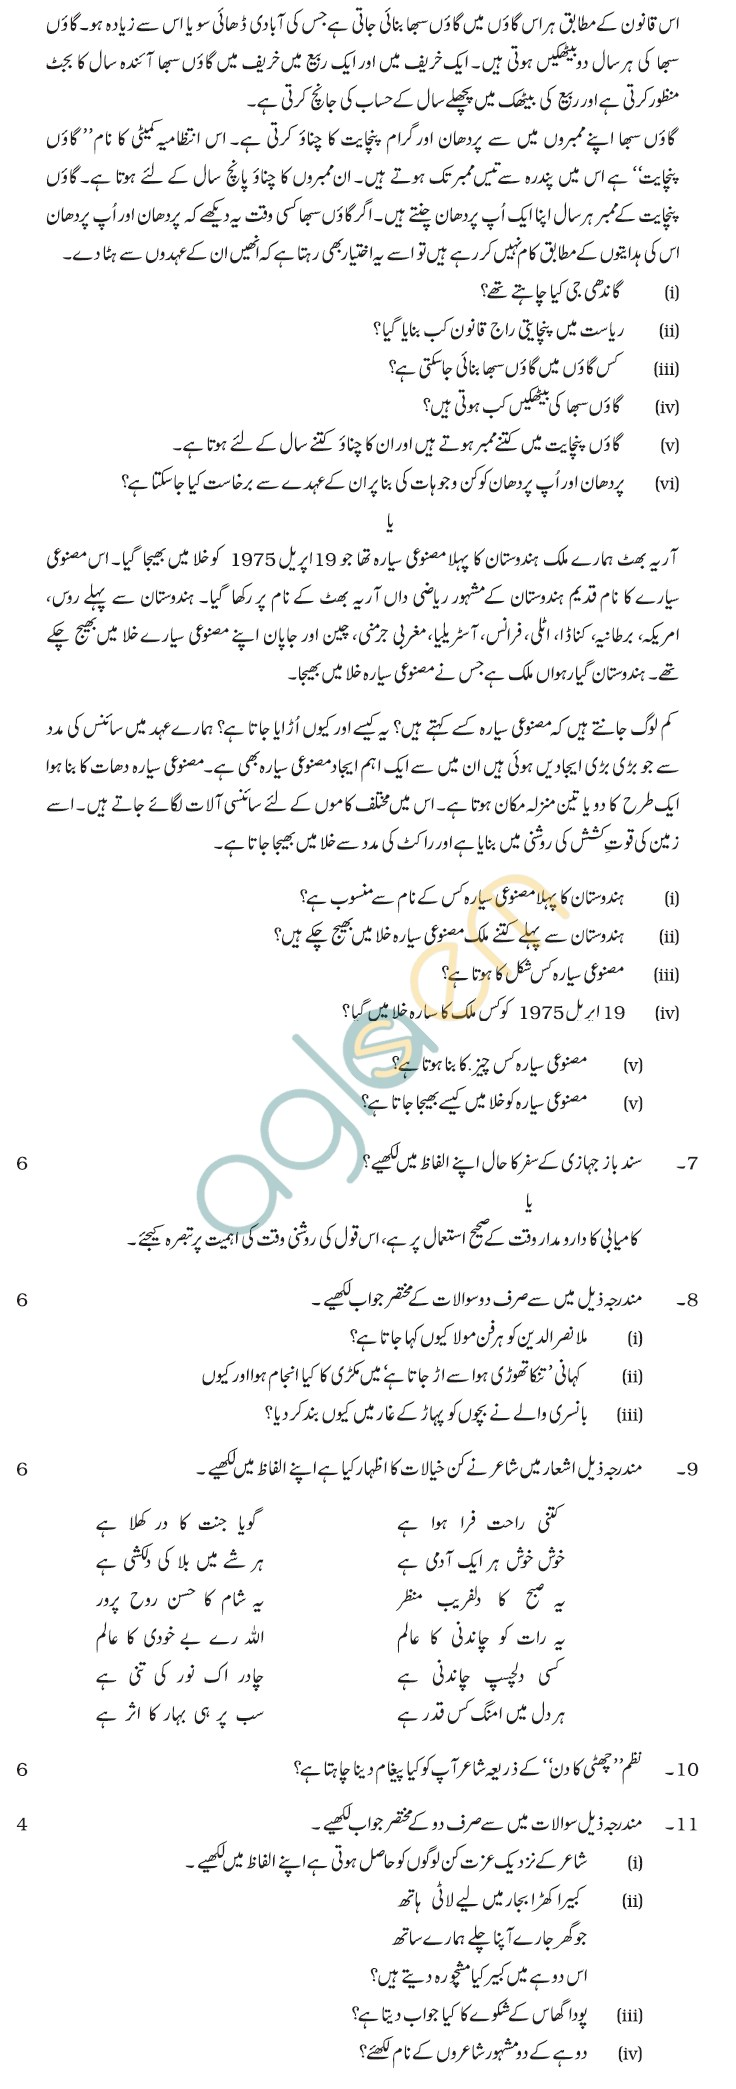 CBSE Class IX Sample Papers 2013 (Second Term) Urdu Course B